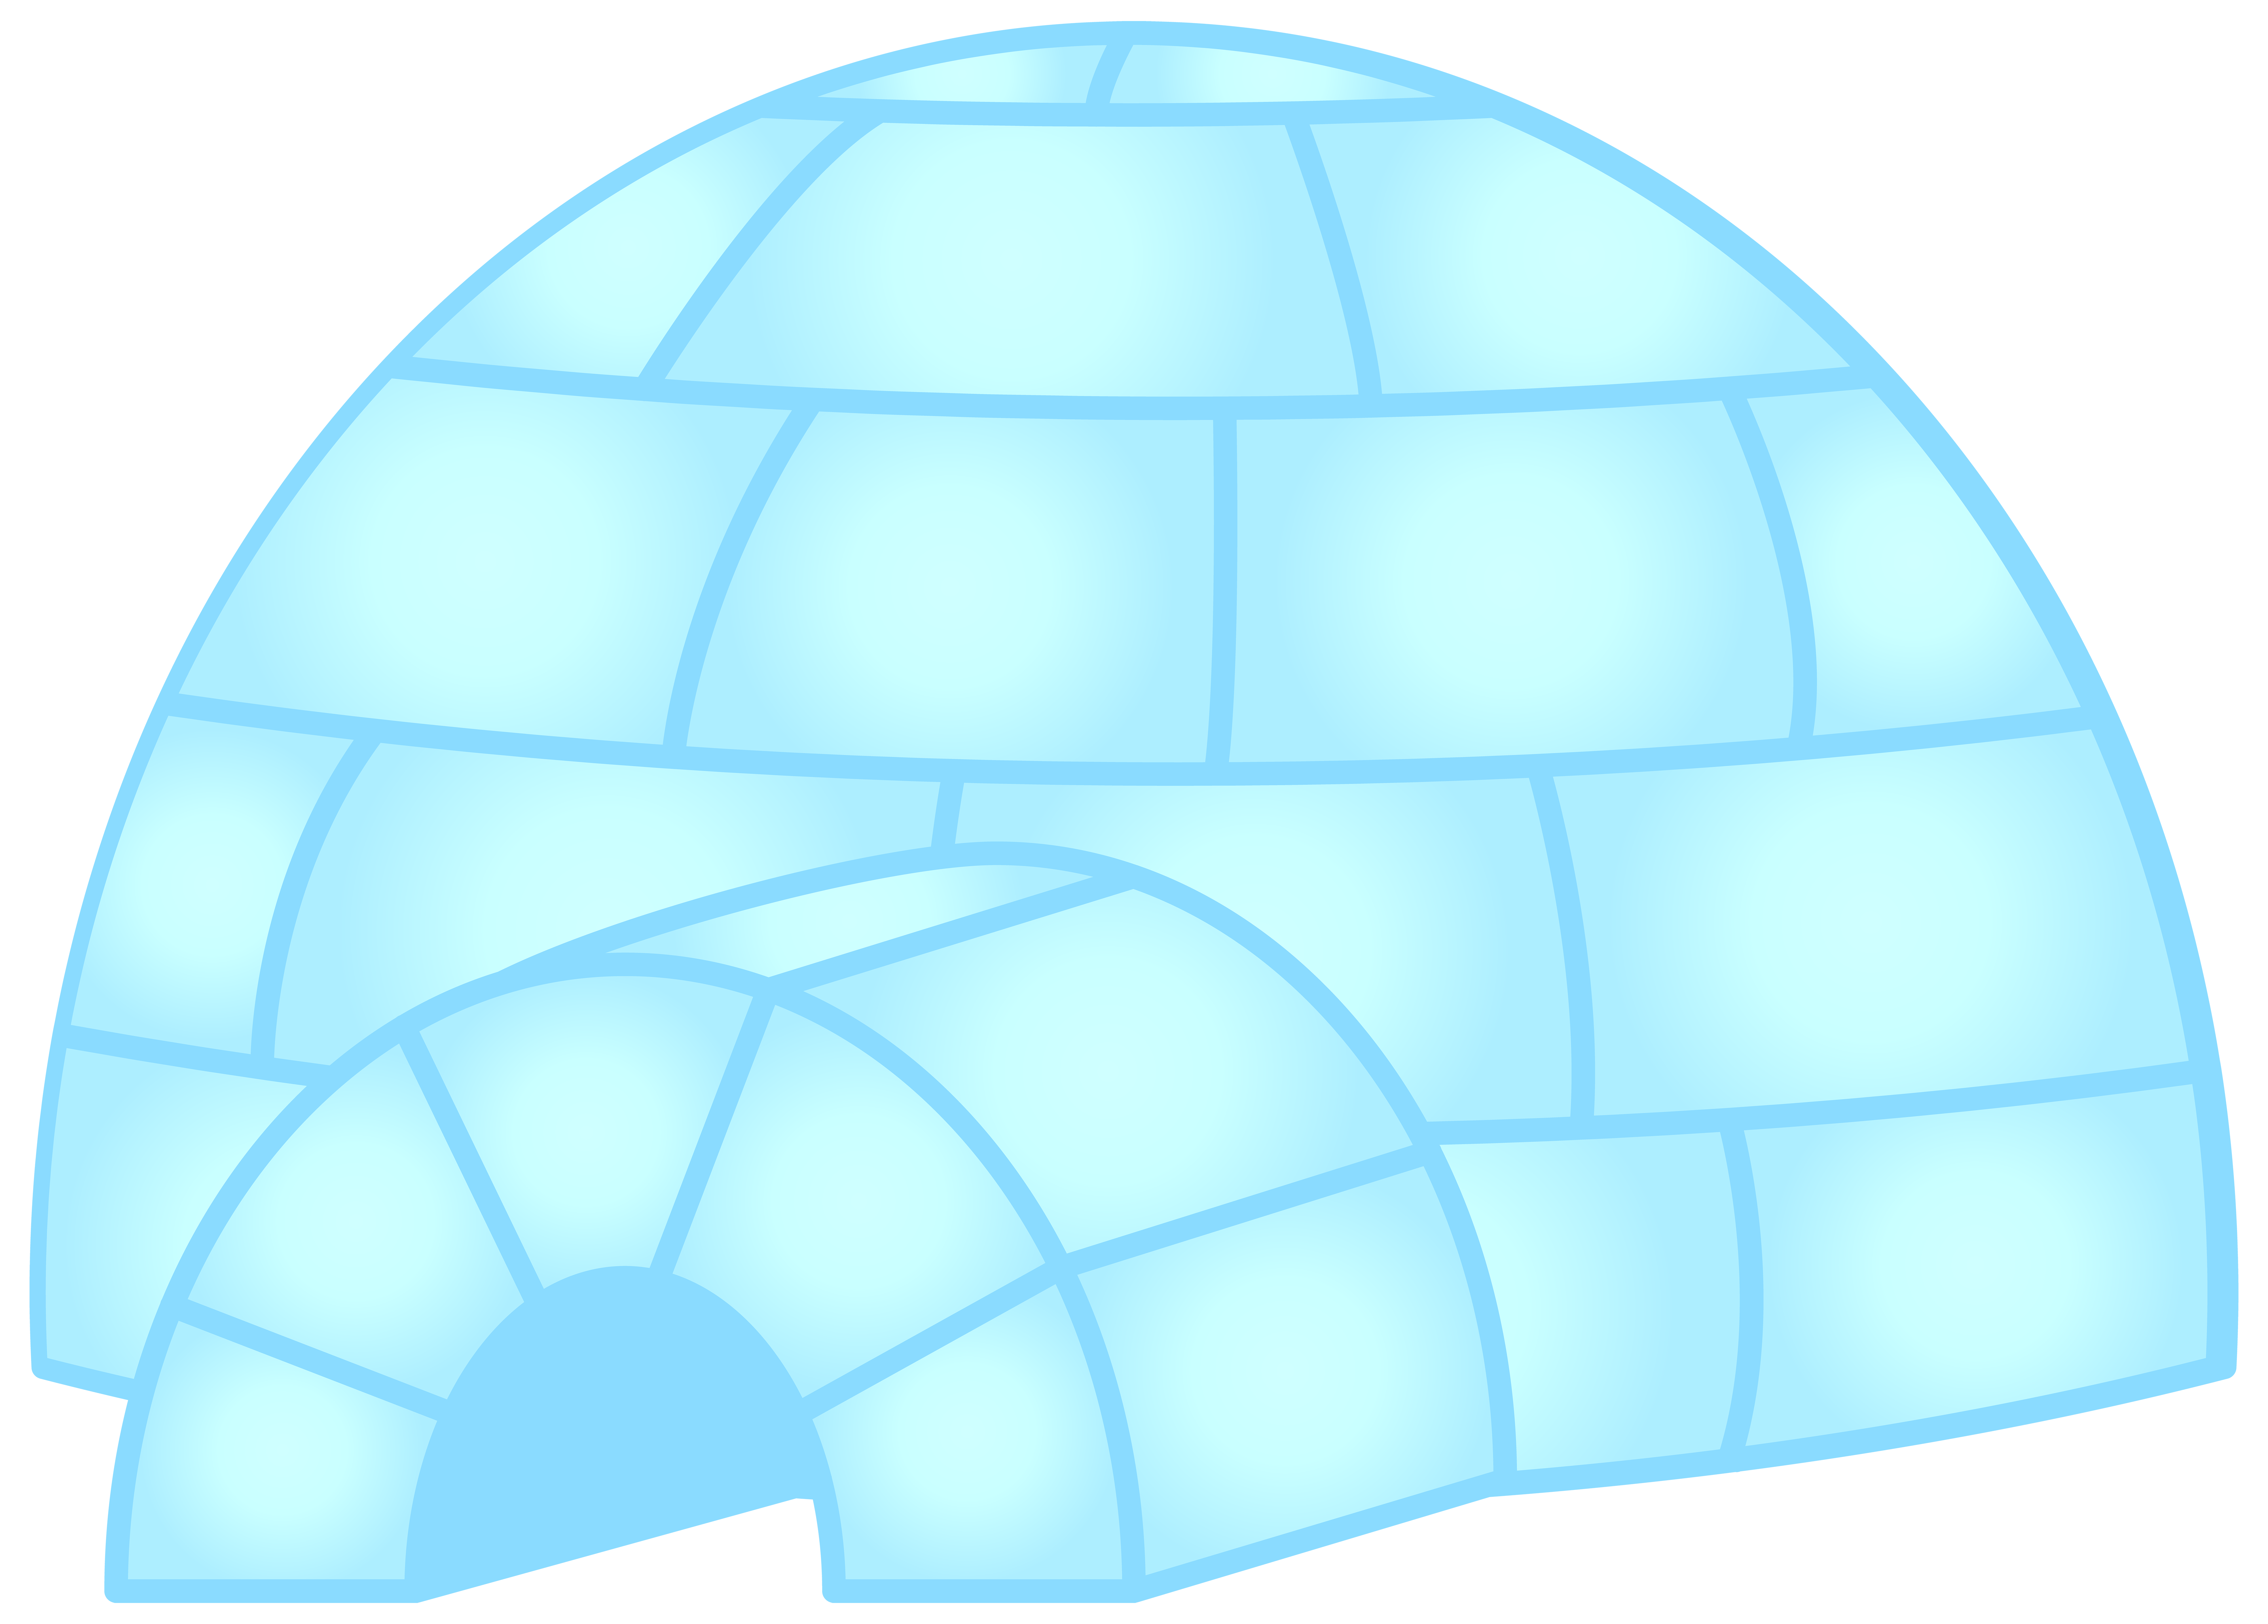 Png clip art gallery. Igloo clipart transparent background